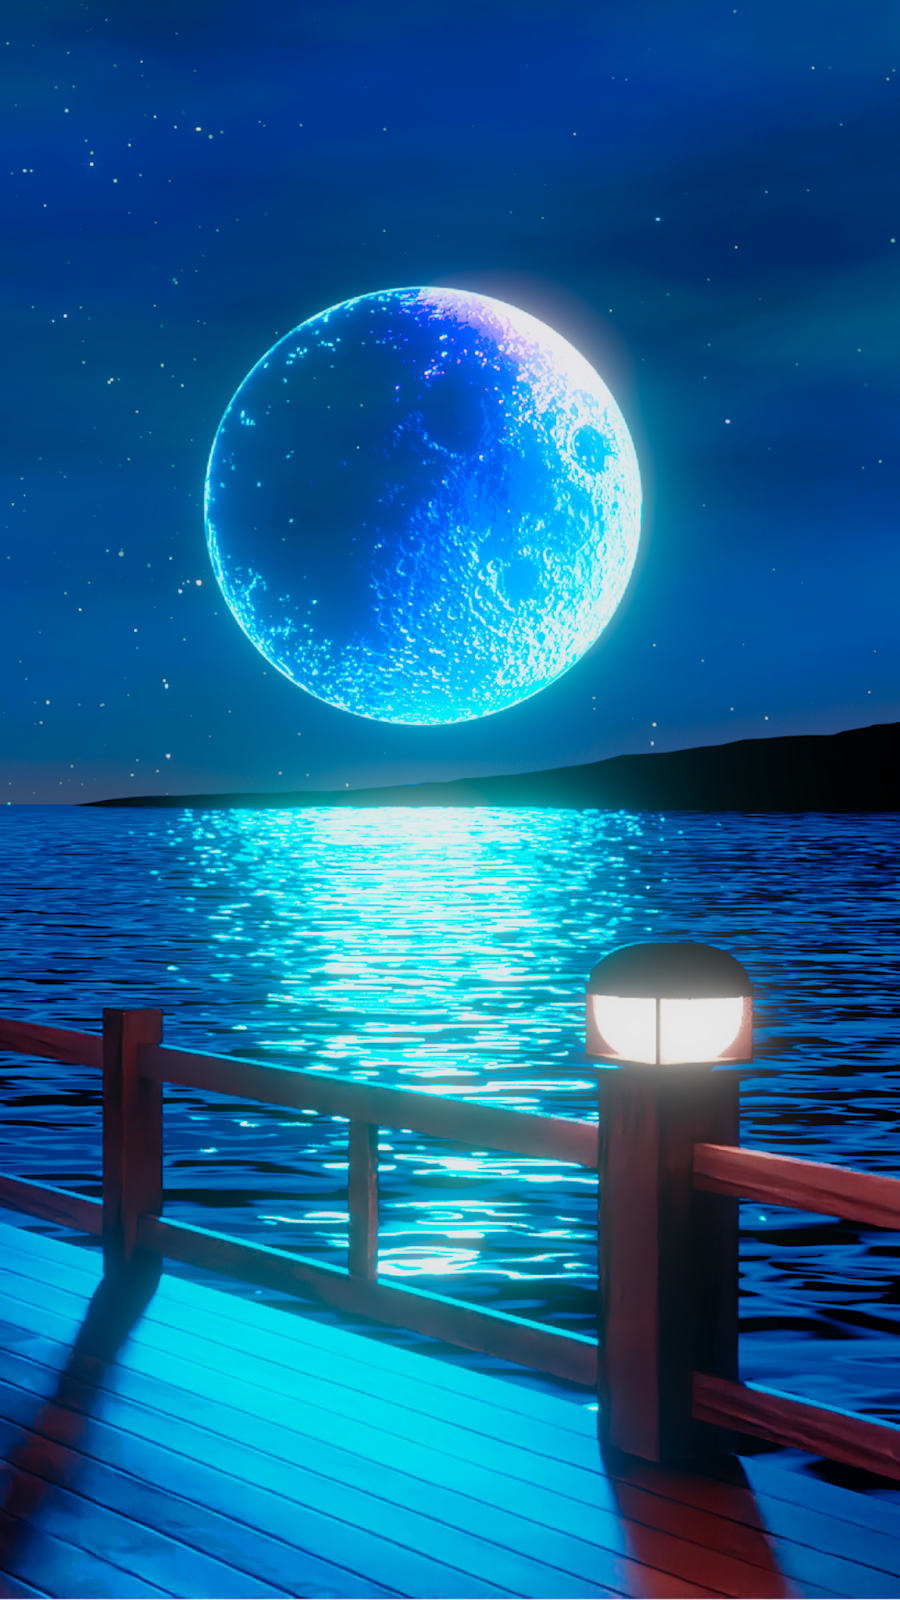 Full Moon Of The Night Beautiful Wallpapers Night Sky Wallpaper Scenery Wallpaper